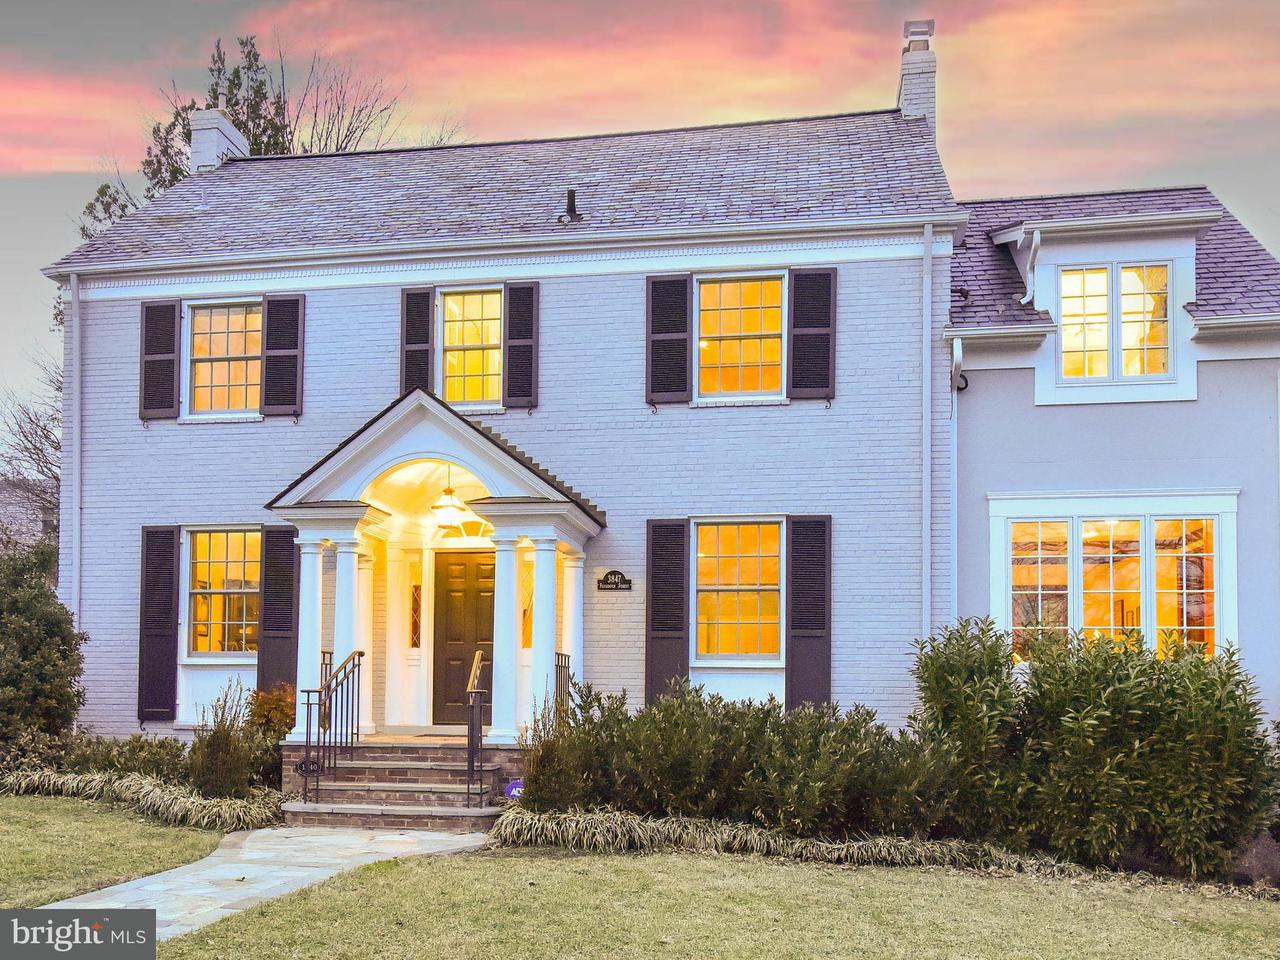 Single Family Home for Sale at 3847 Fessenden St Nw 3847 Fessenden St Nw Washington, District Of Columbia 20016 United States